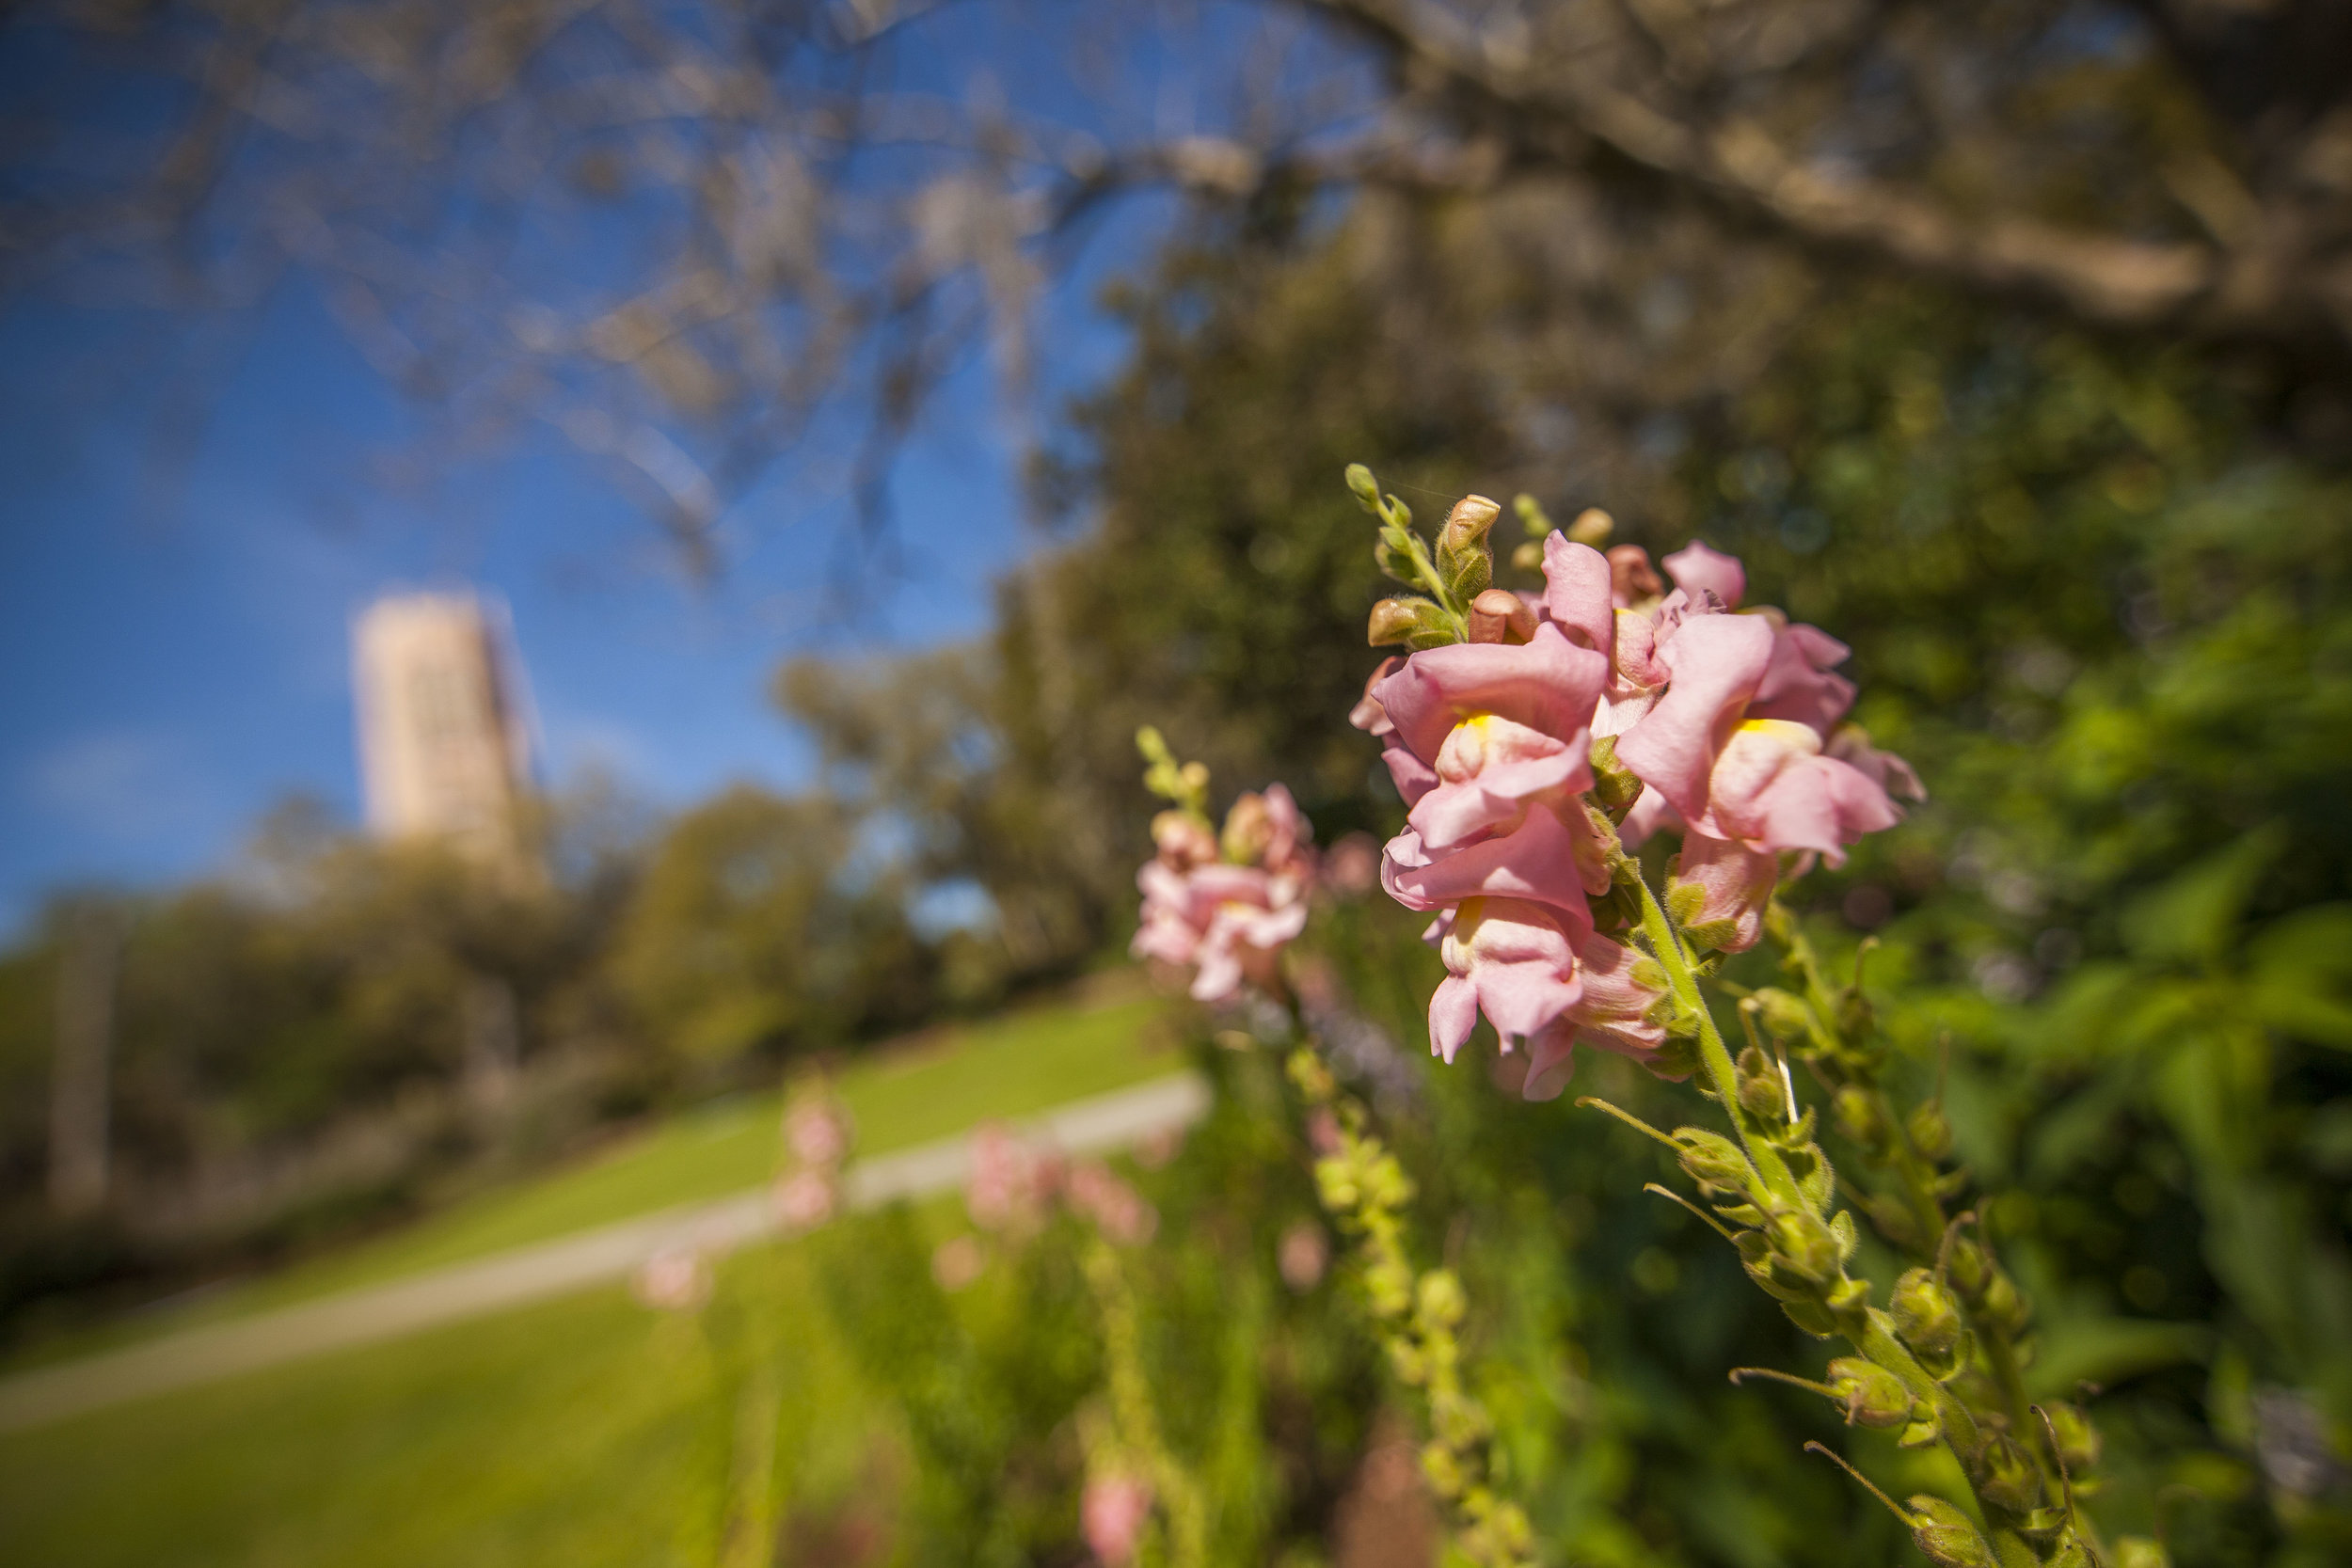 blooms-at-bok-tower-gardens_28172397350_o.jpg